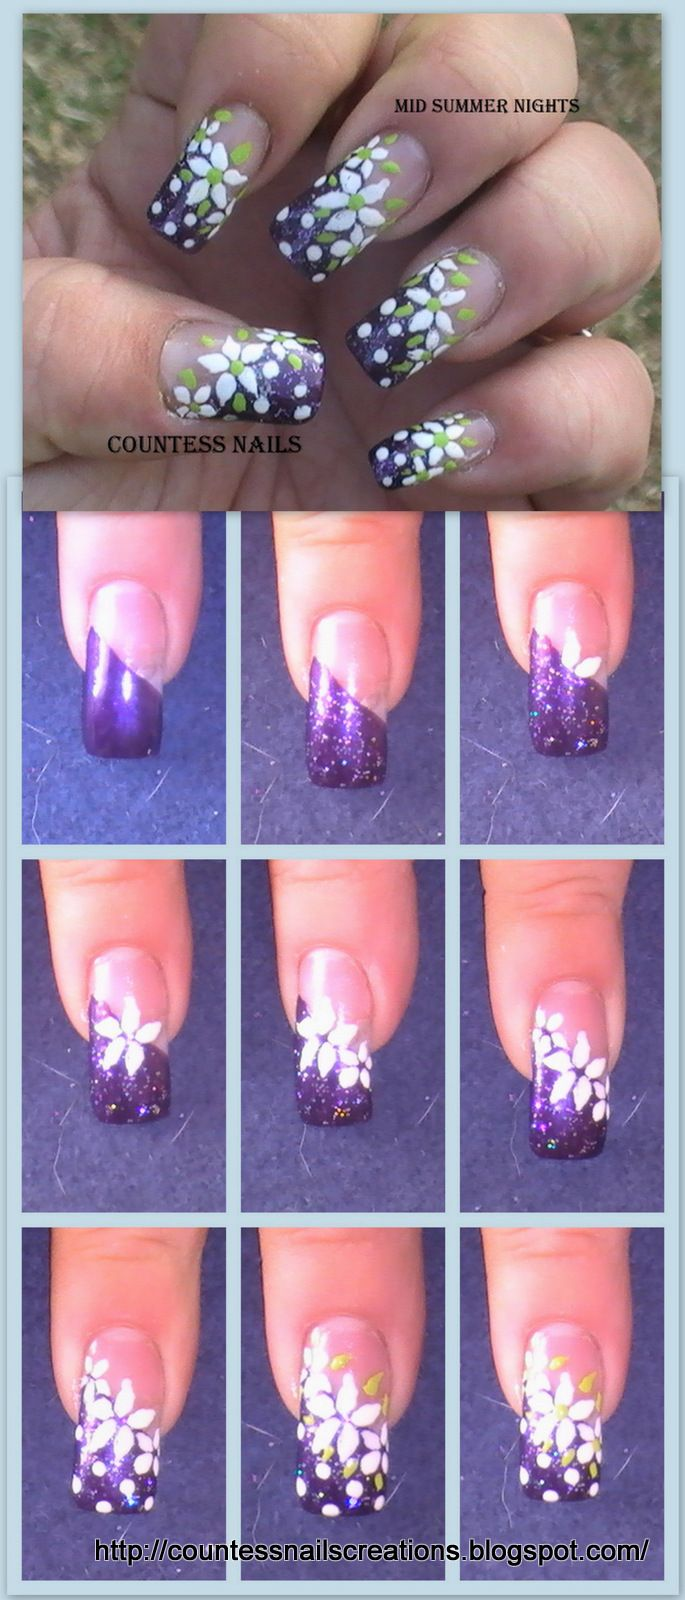 White flowers purple french nail art tutorial | UÑAS | Pinterest ...